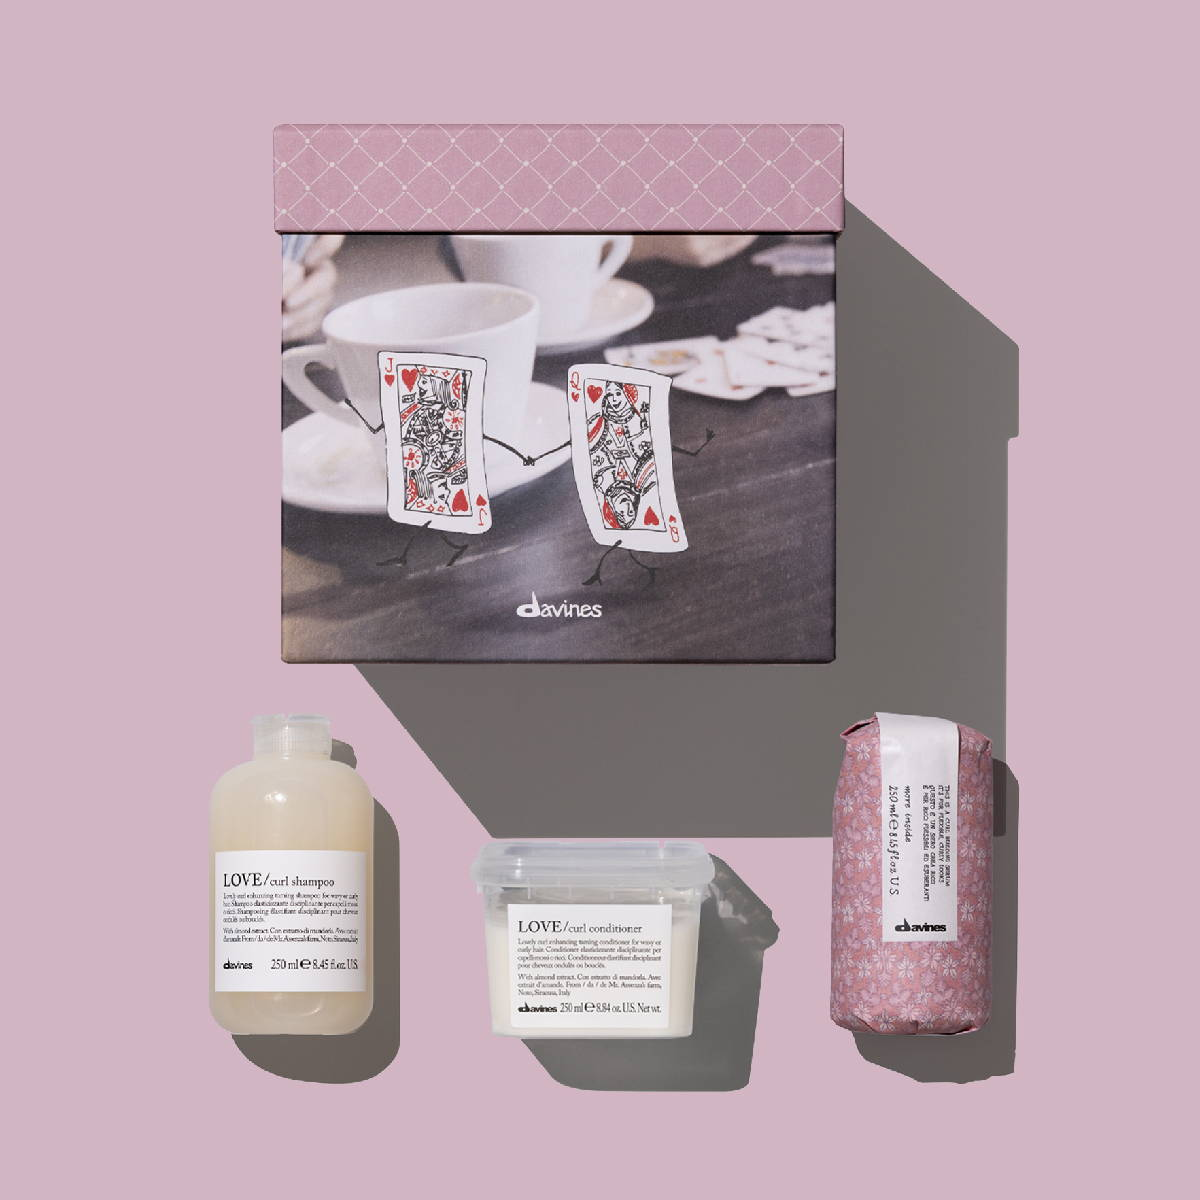 Davines Love Curl Holiday Set